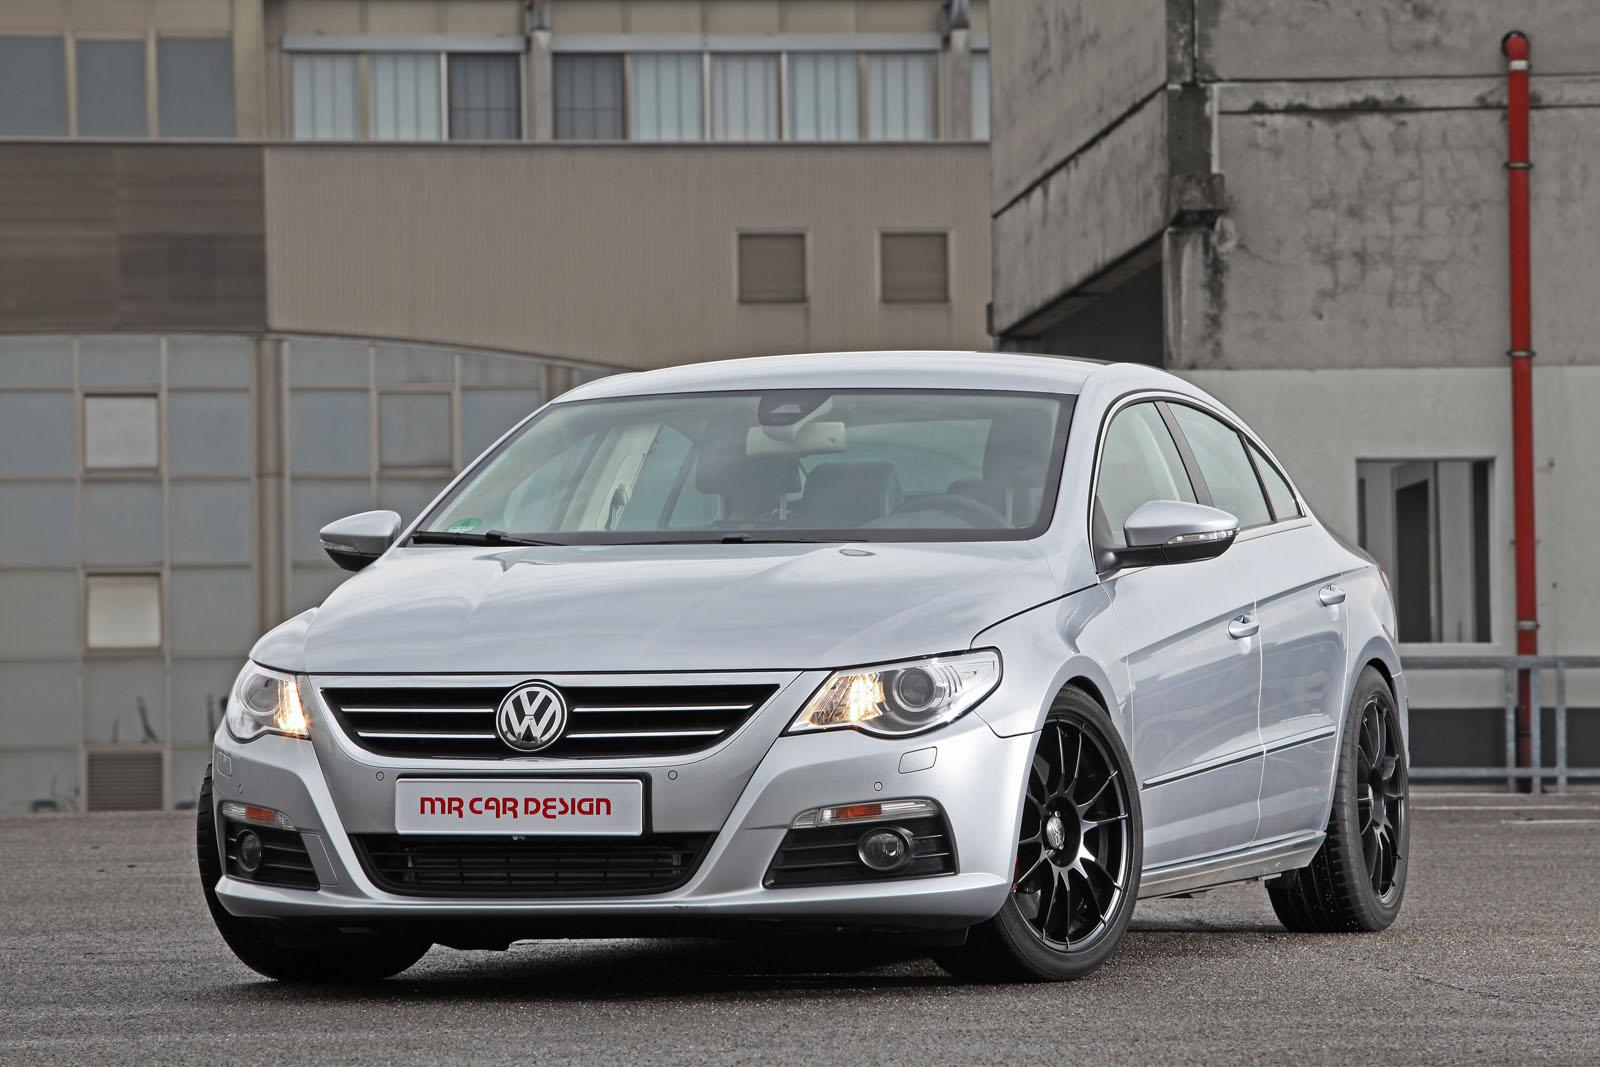 Vw Passat Cc Tuned By Mr Car Design Autoevolution